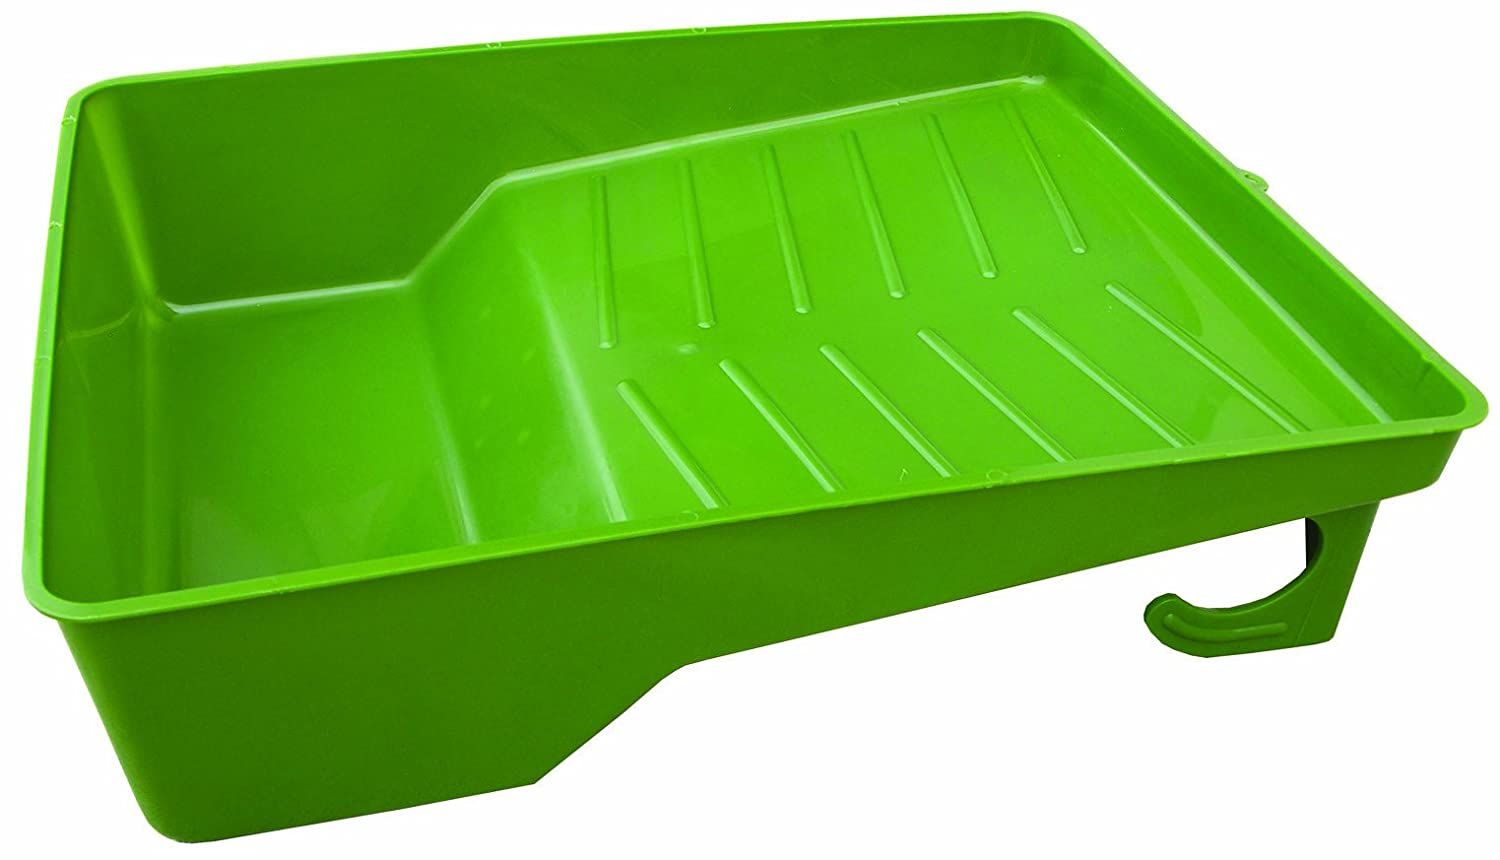 EcoSmart 45ECO 11-Percent Deepwell Roller Paint Tray Encore Paint HH-36518587